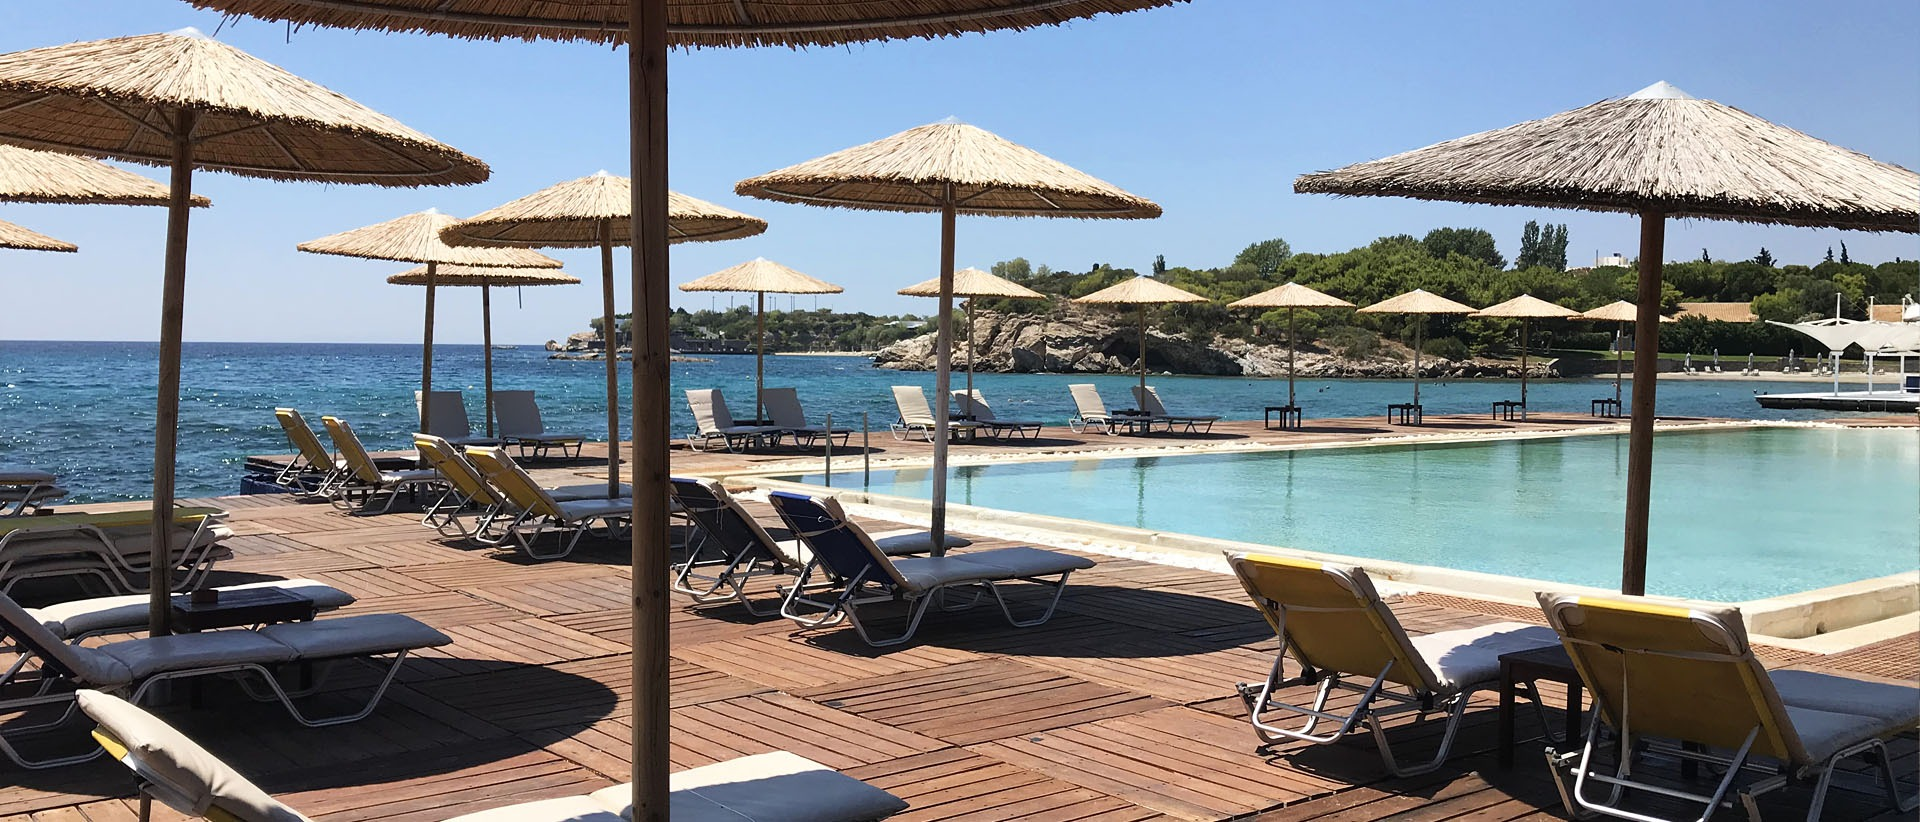 Experience the ultimate summer experience at Grand Beach Pool Lagonissi!